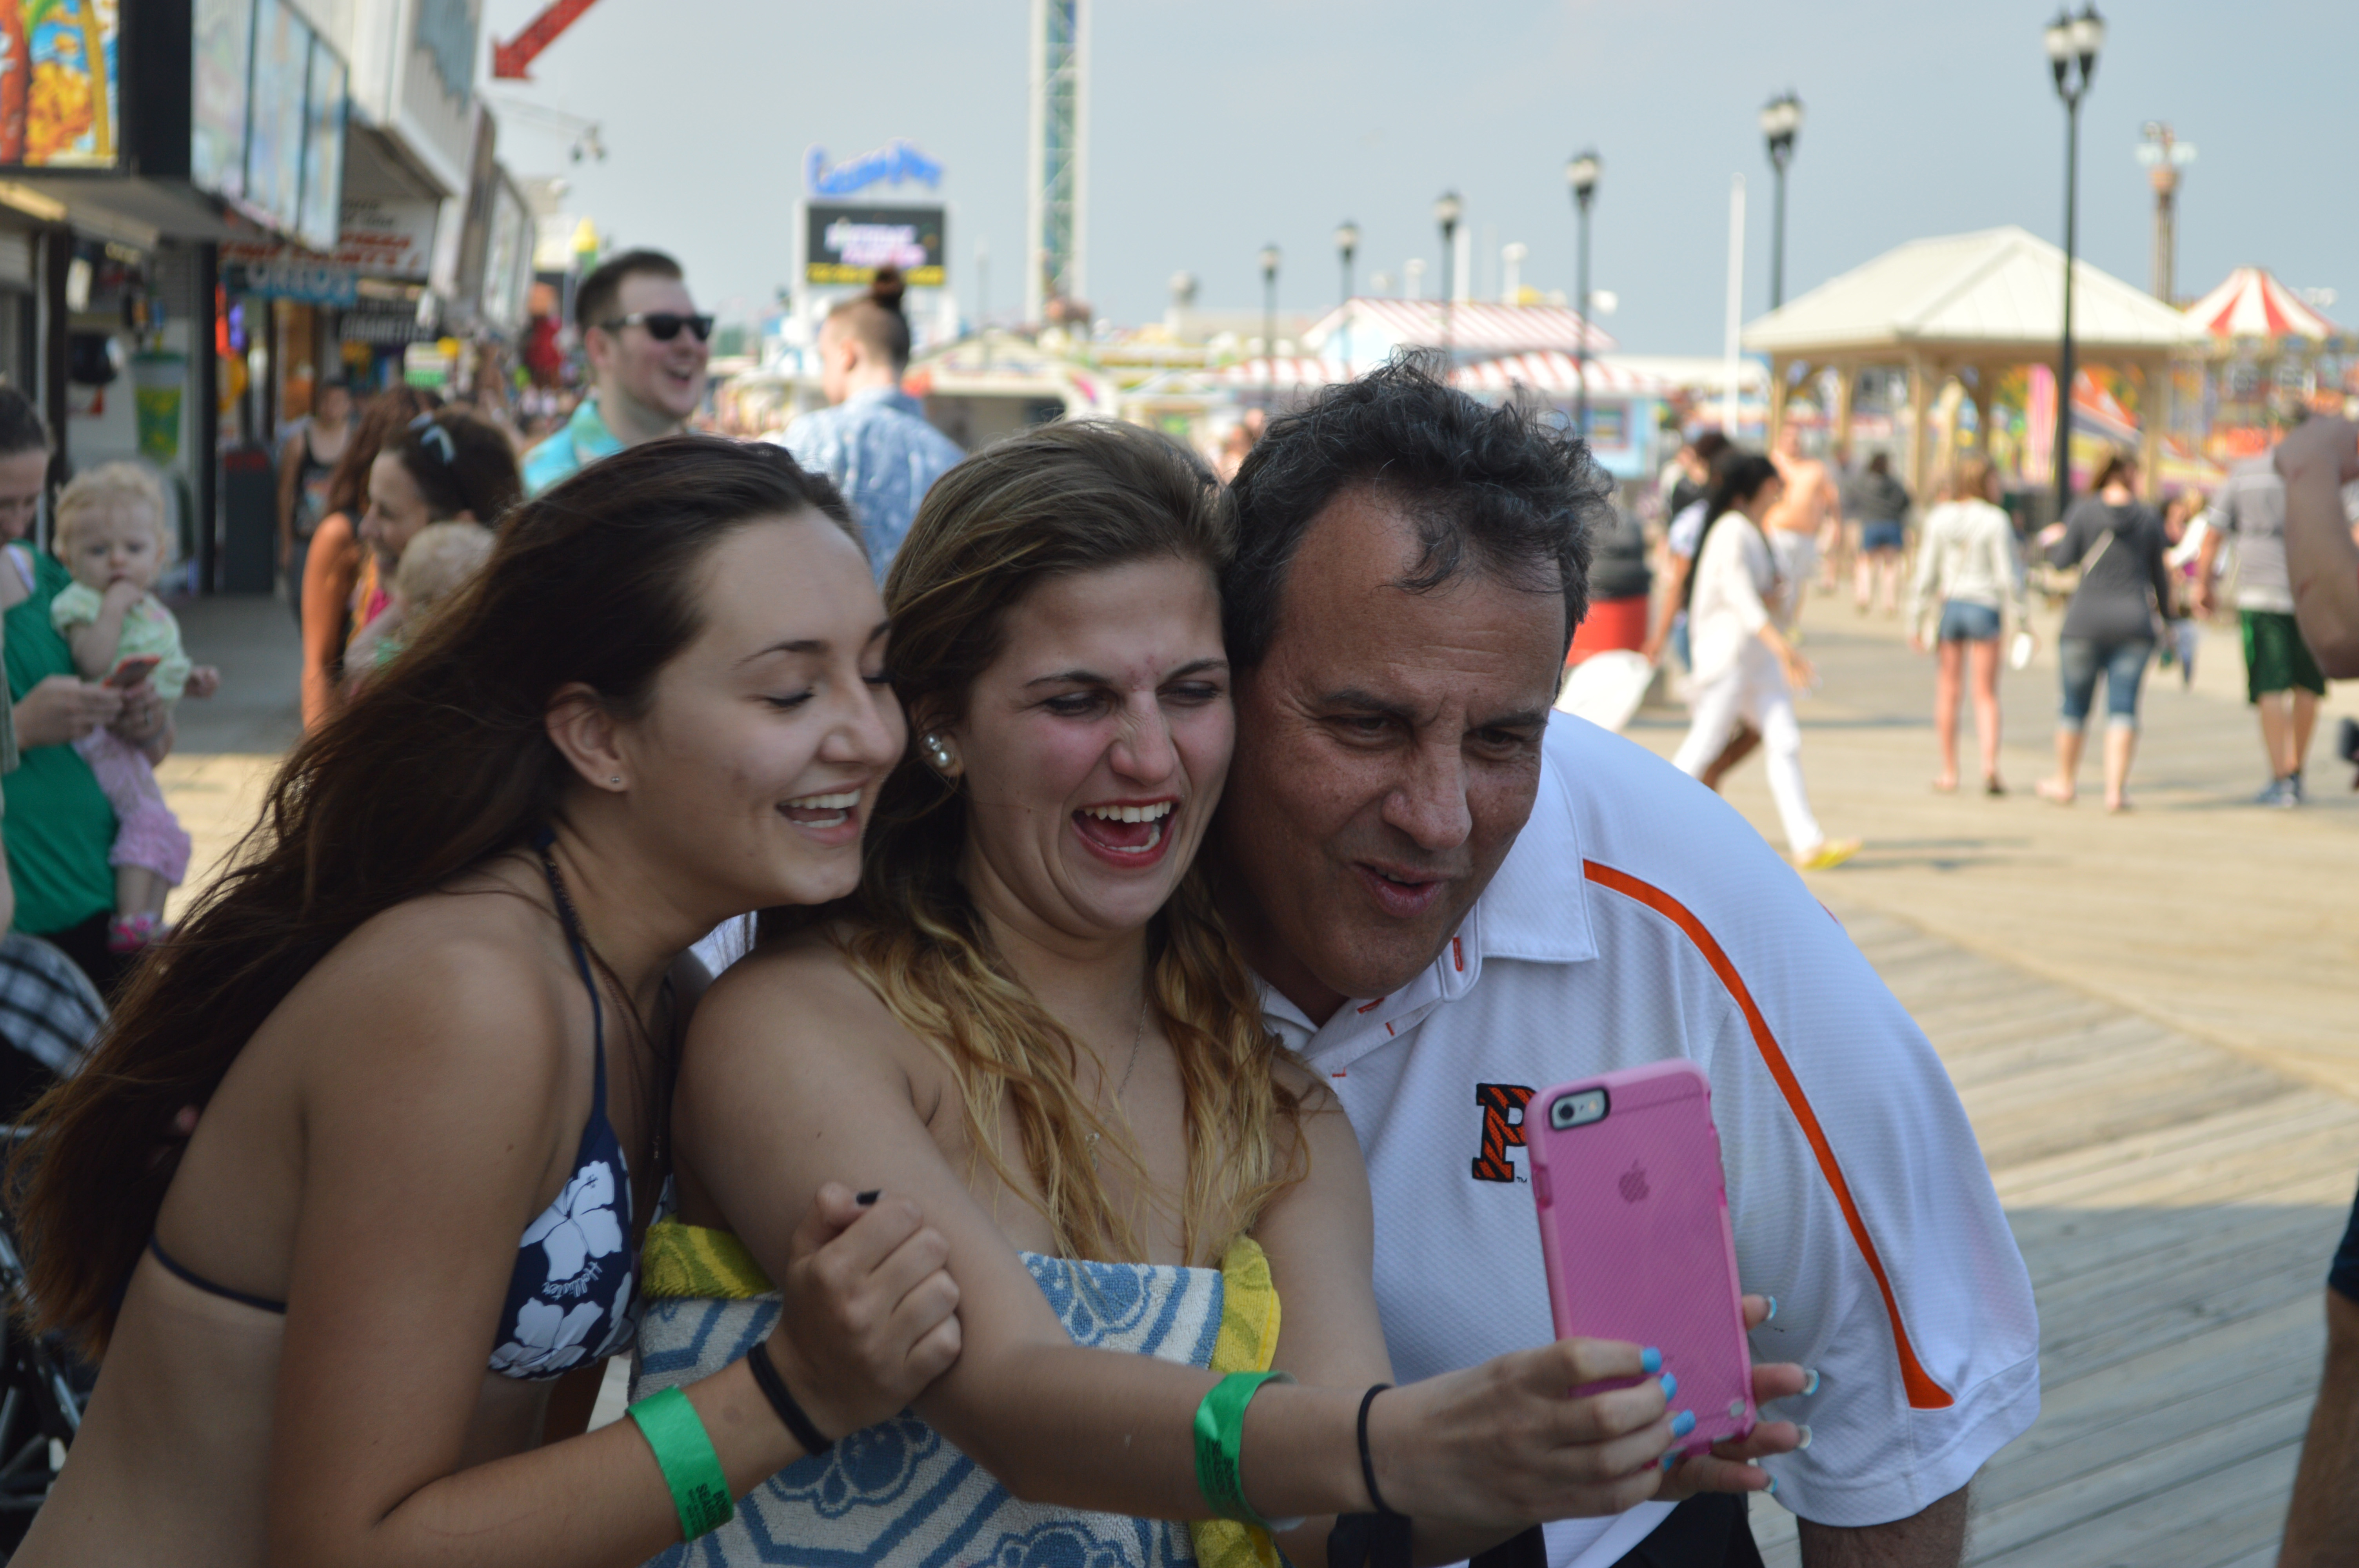 Gov. Chris Christie takes a selfie with two young supporters on the Seaside Heights boardwalk, May 27, 2016. (Photo: Daniel Nee)